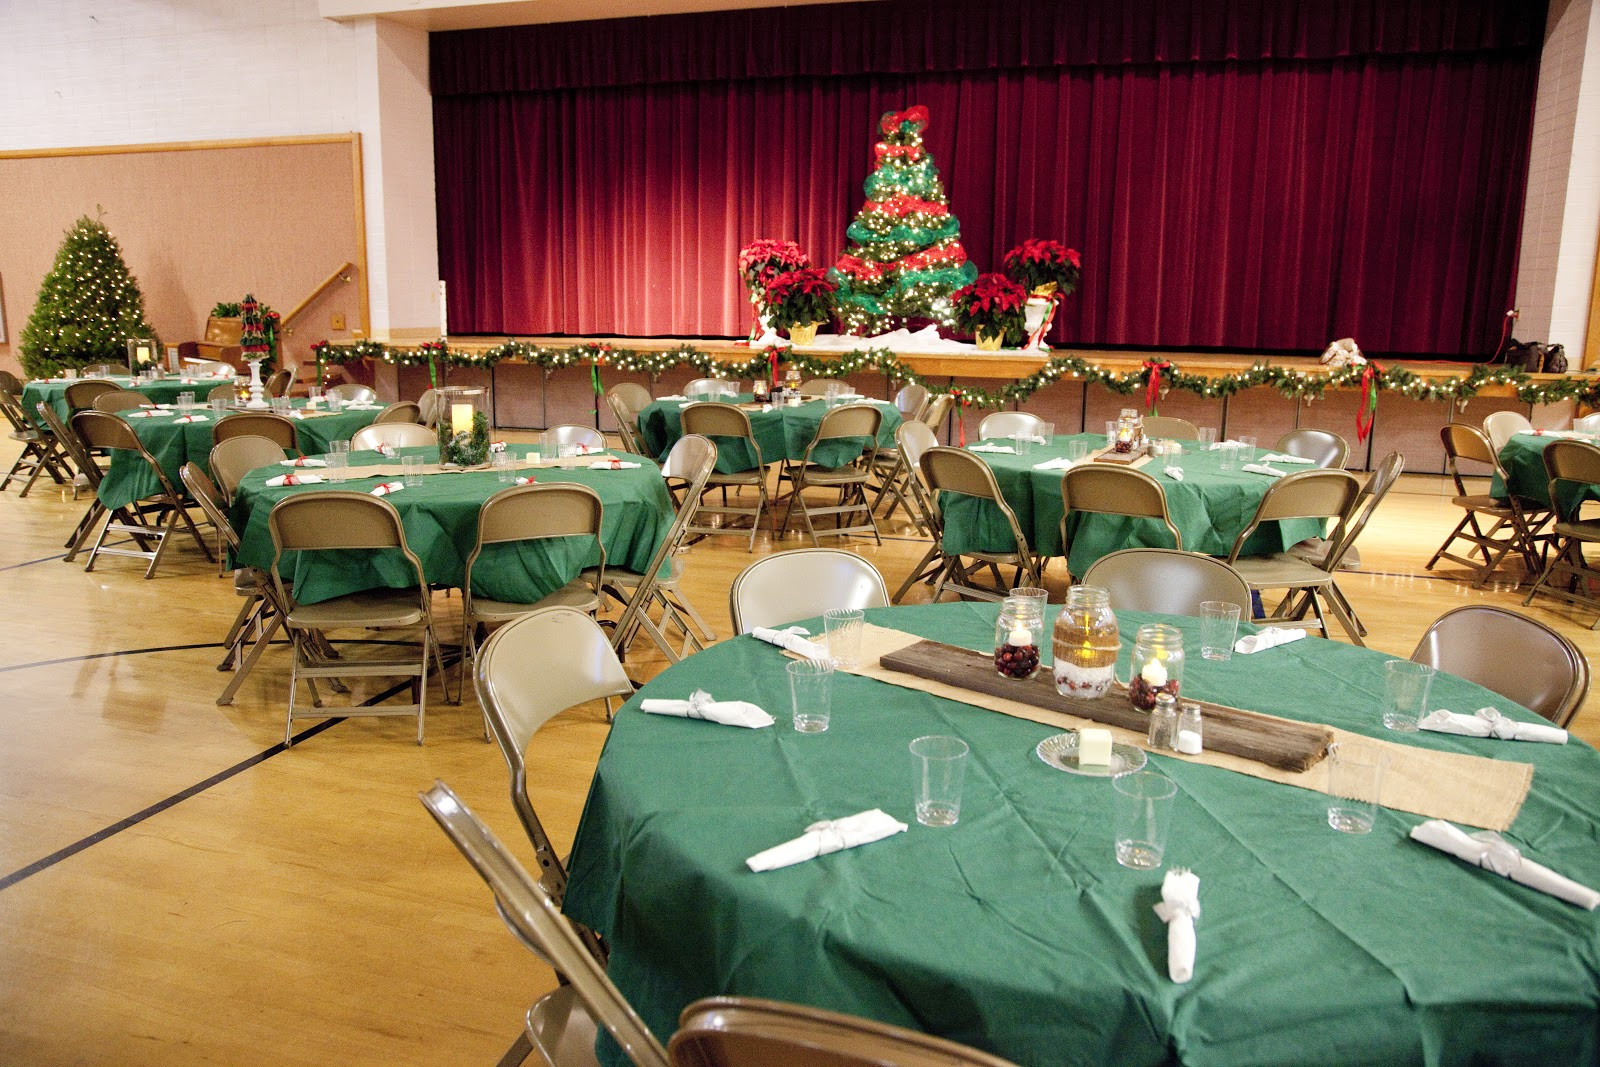 Church Christmas Party Ideas  The House of Nash Ward Christmas Party